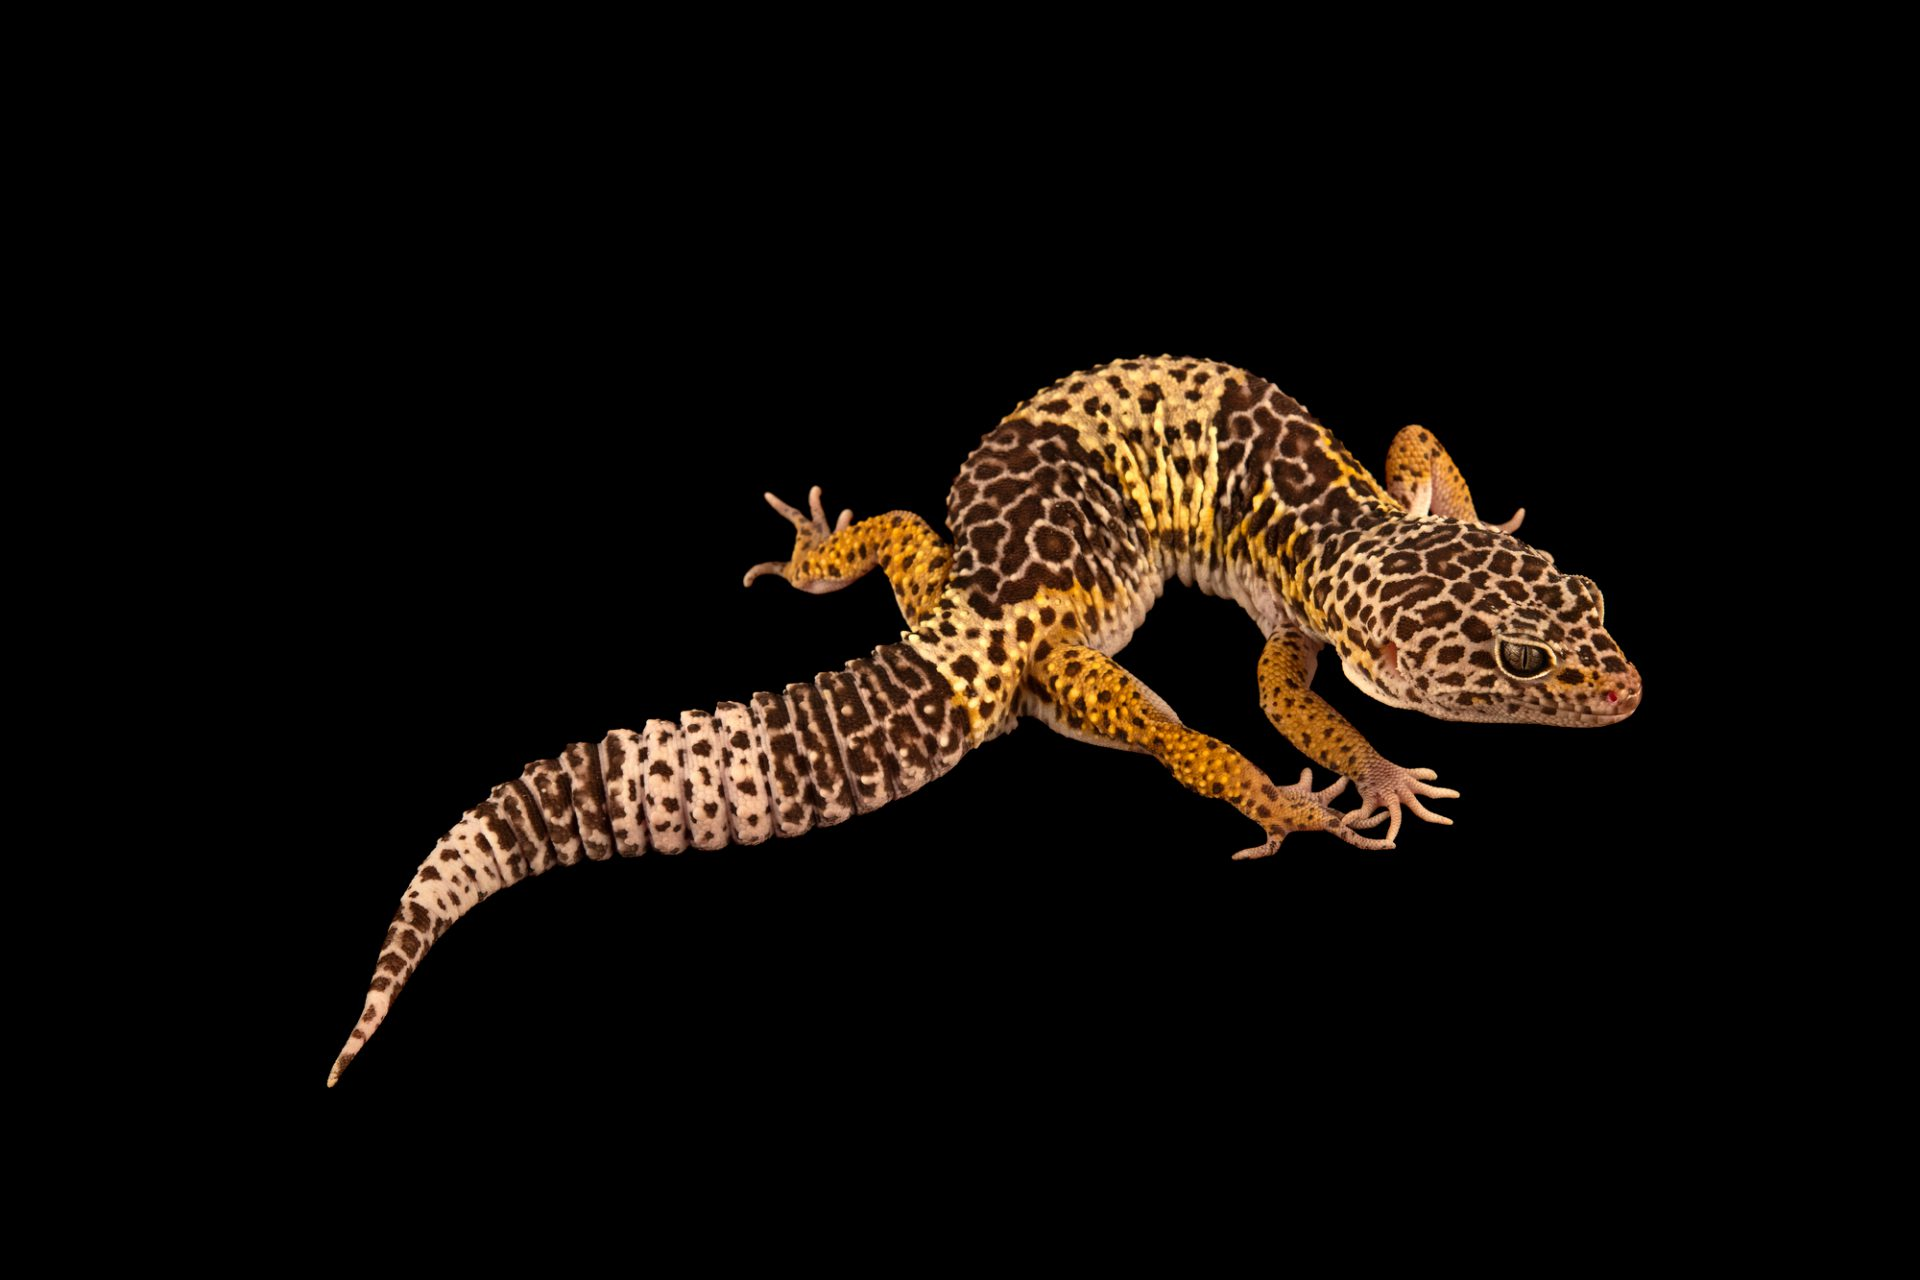 Photo: A West Indian leopard gecko (Eublepharis fuscus) from a private collection.